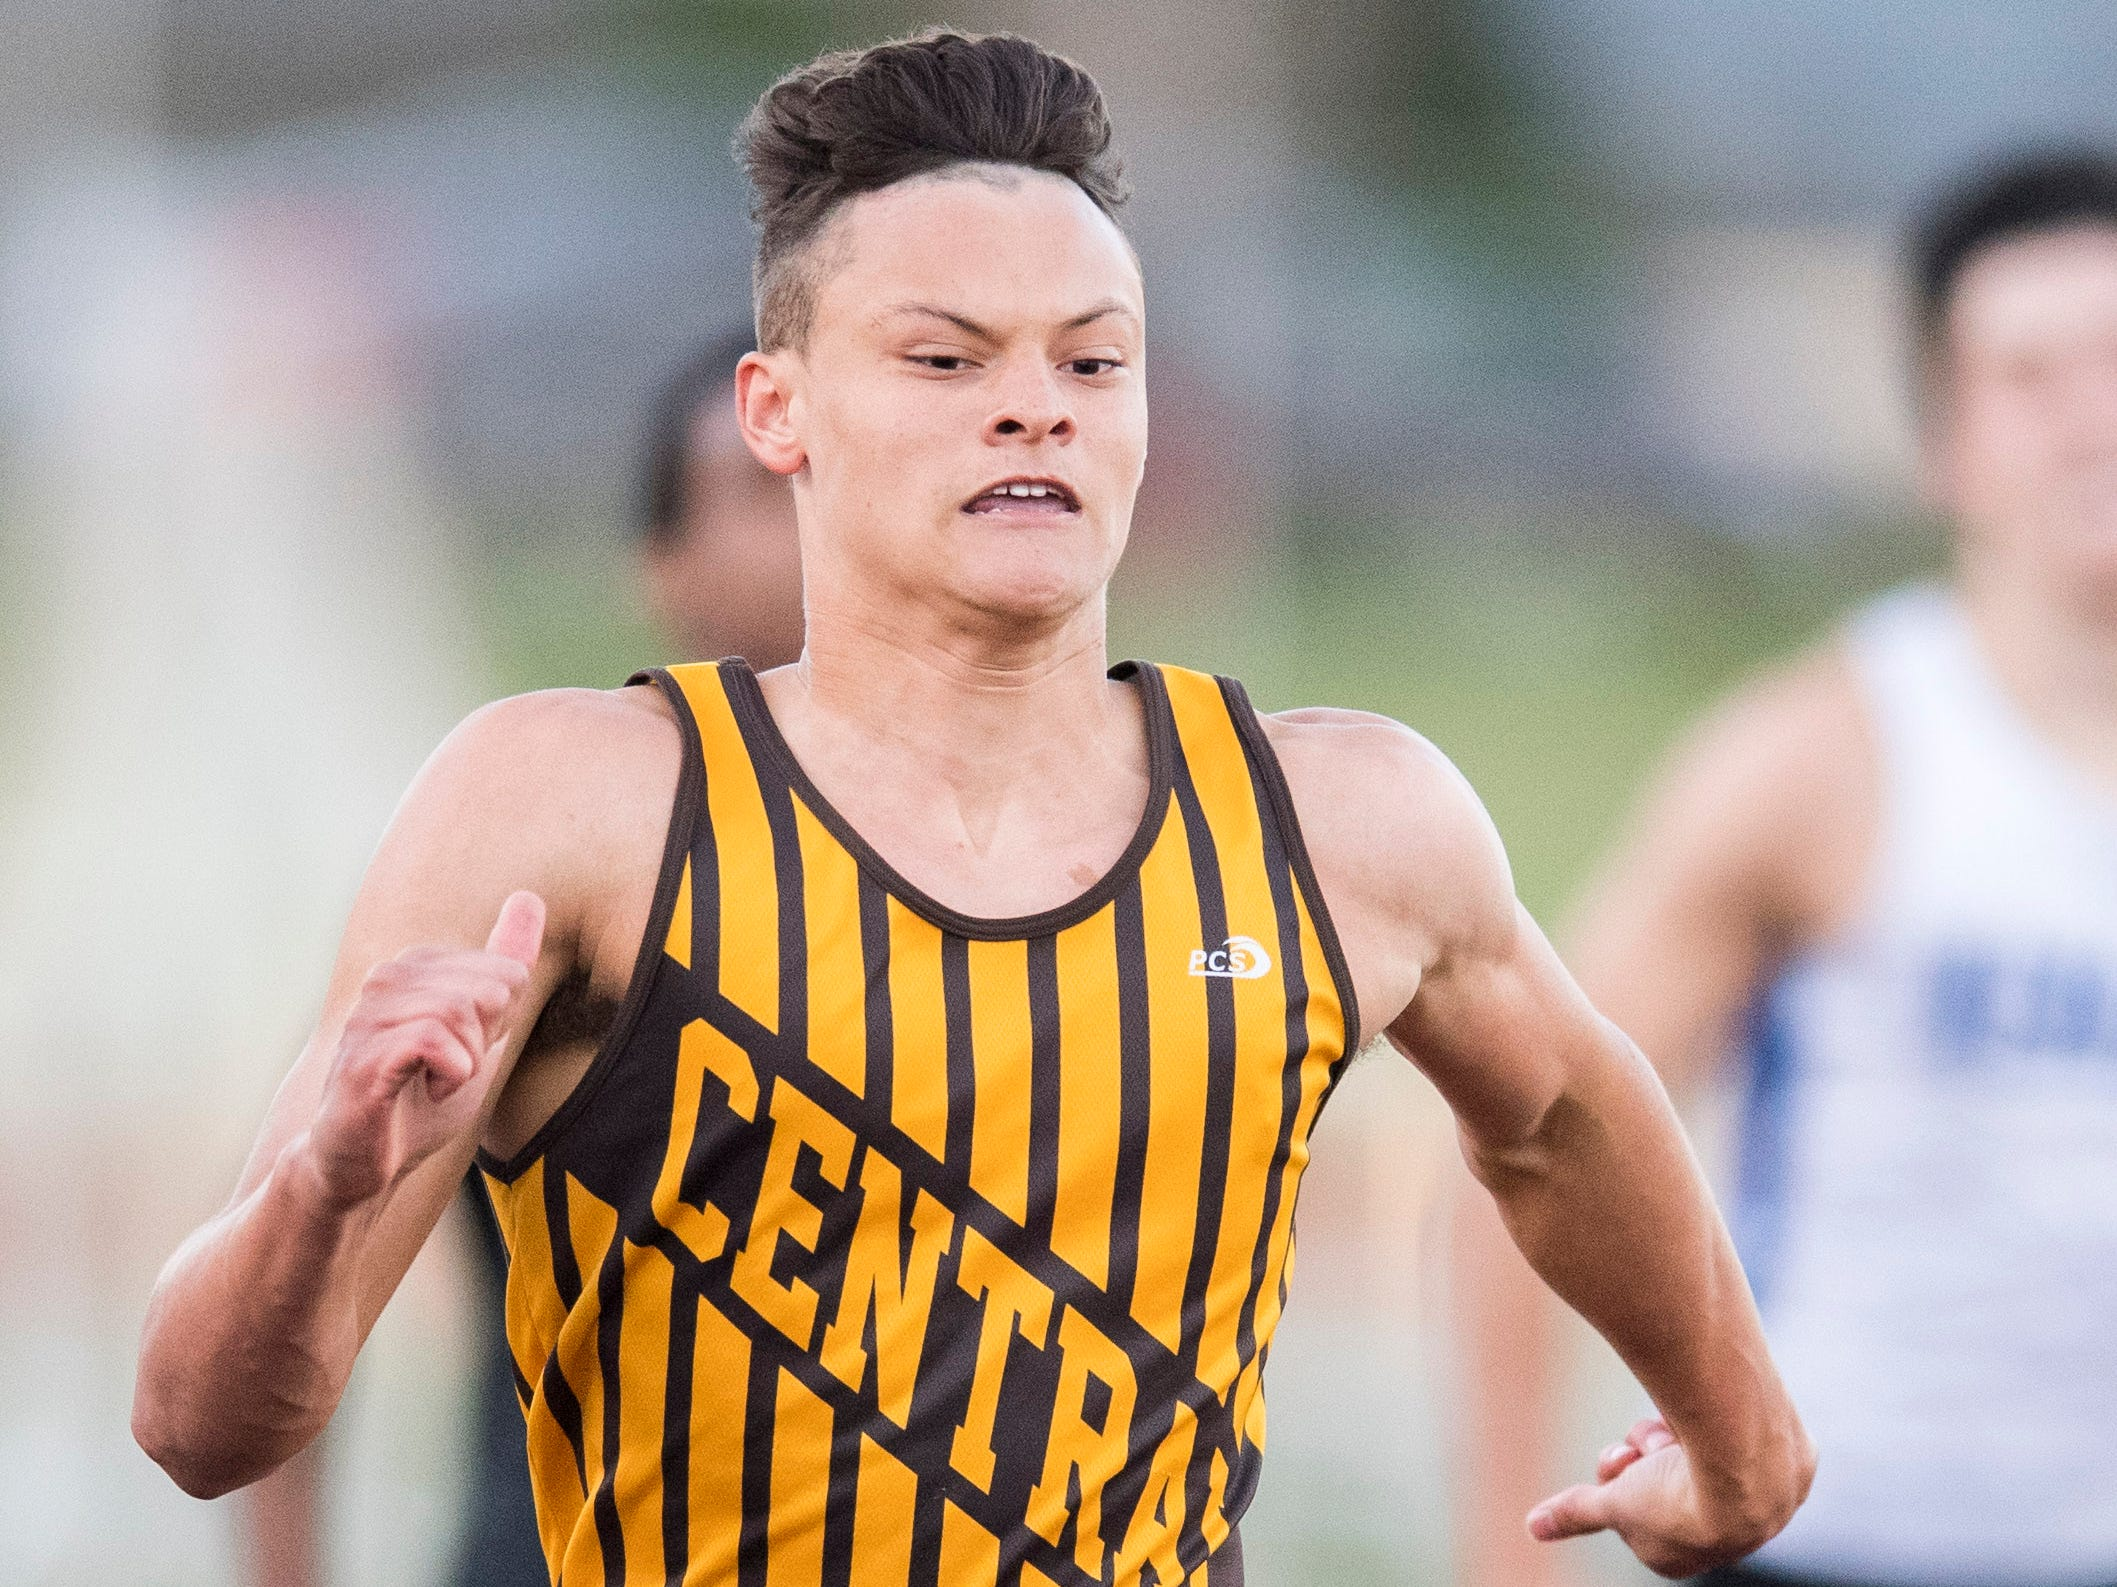 Jalen Bowman gains speed in the boys 200m dash  during the 2019 City Track and Field meet at Central High School Friday, April 12, 2019. Bowman placed first in the event.